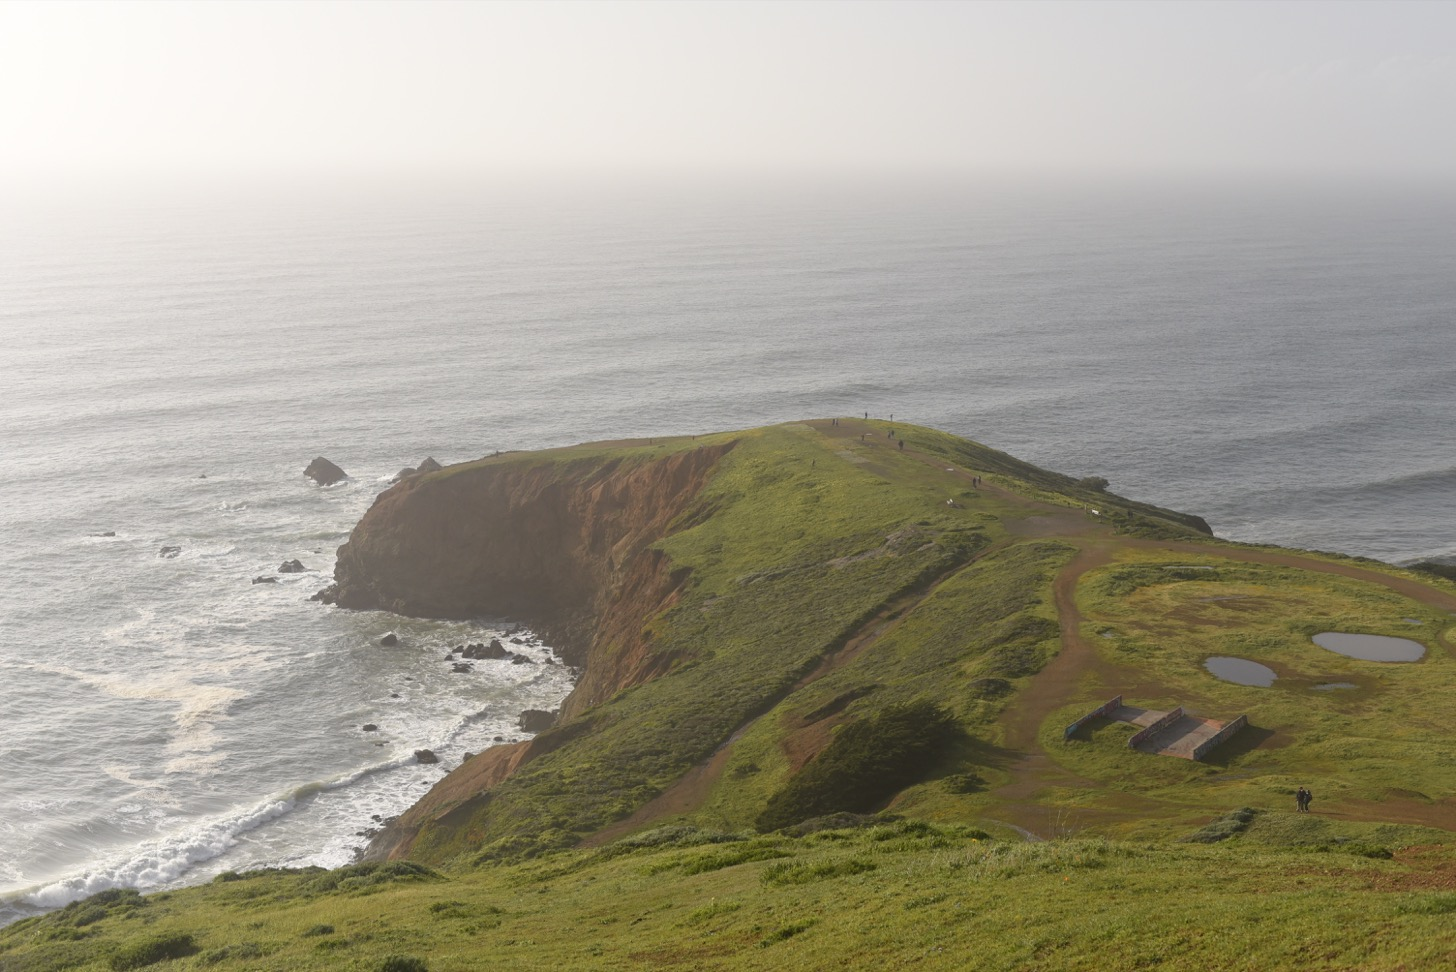 The bluffs at Mori Point.